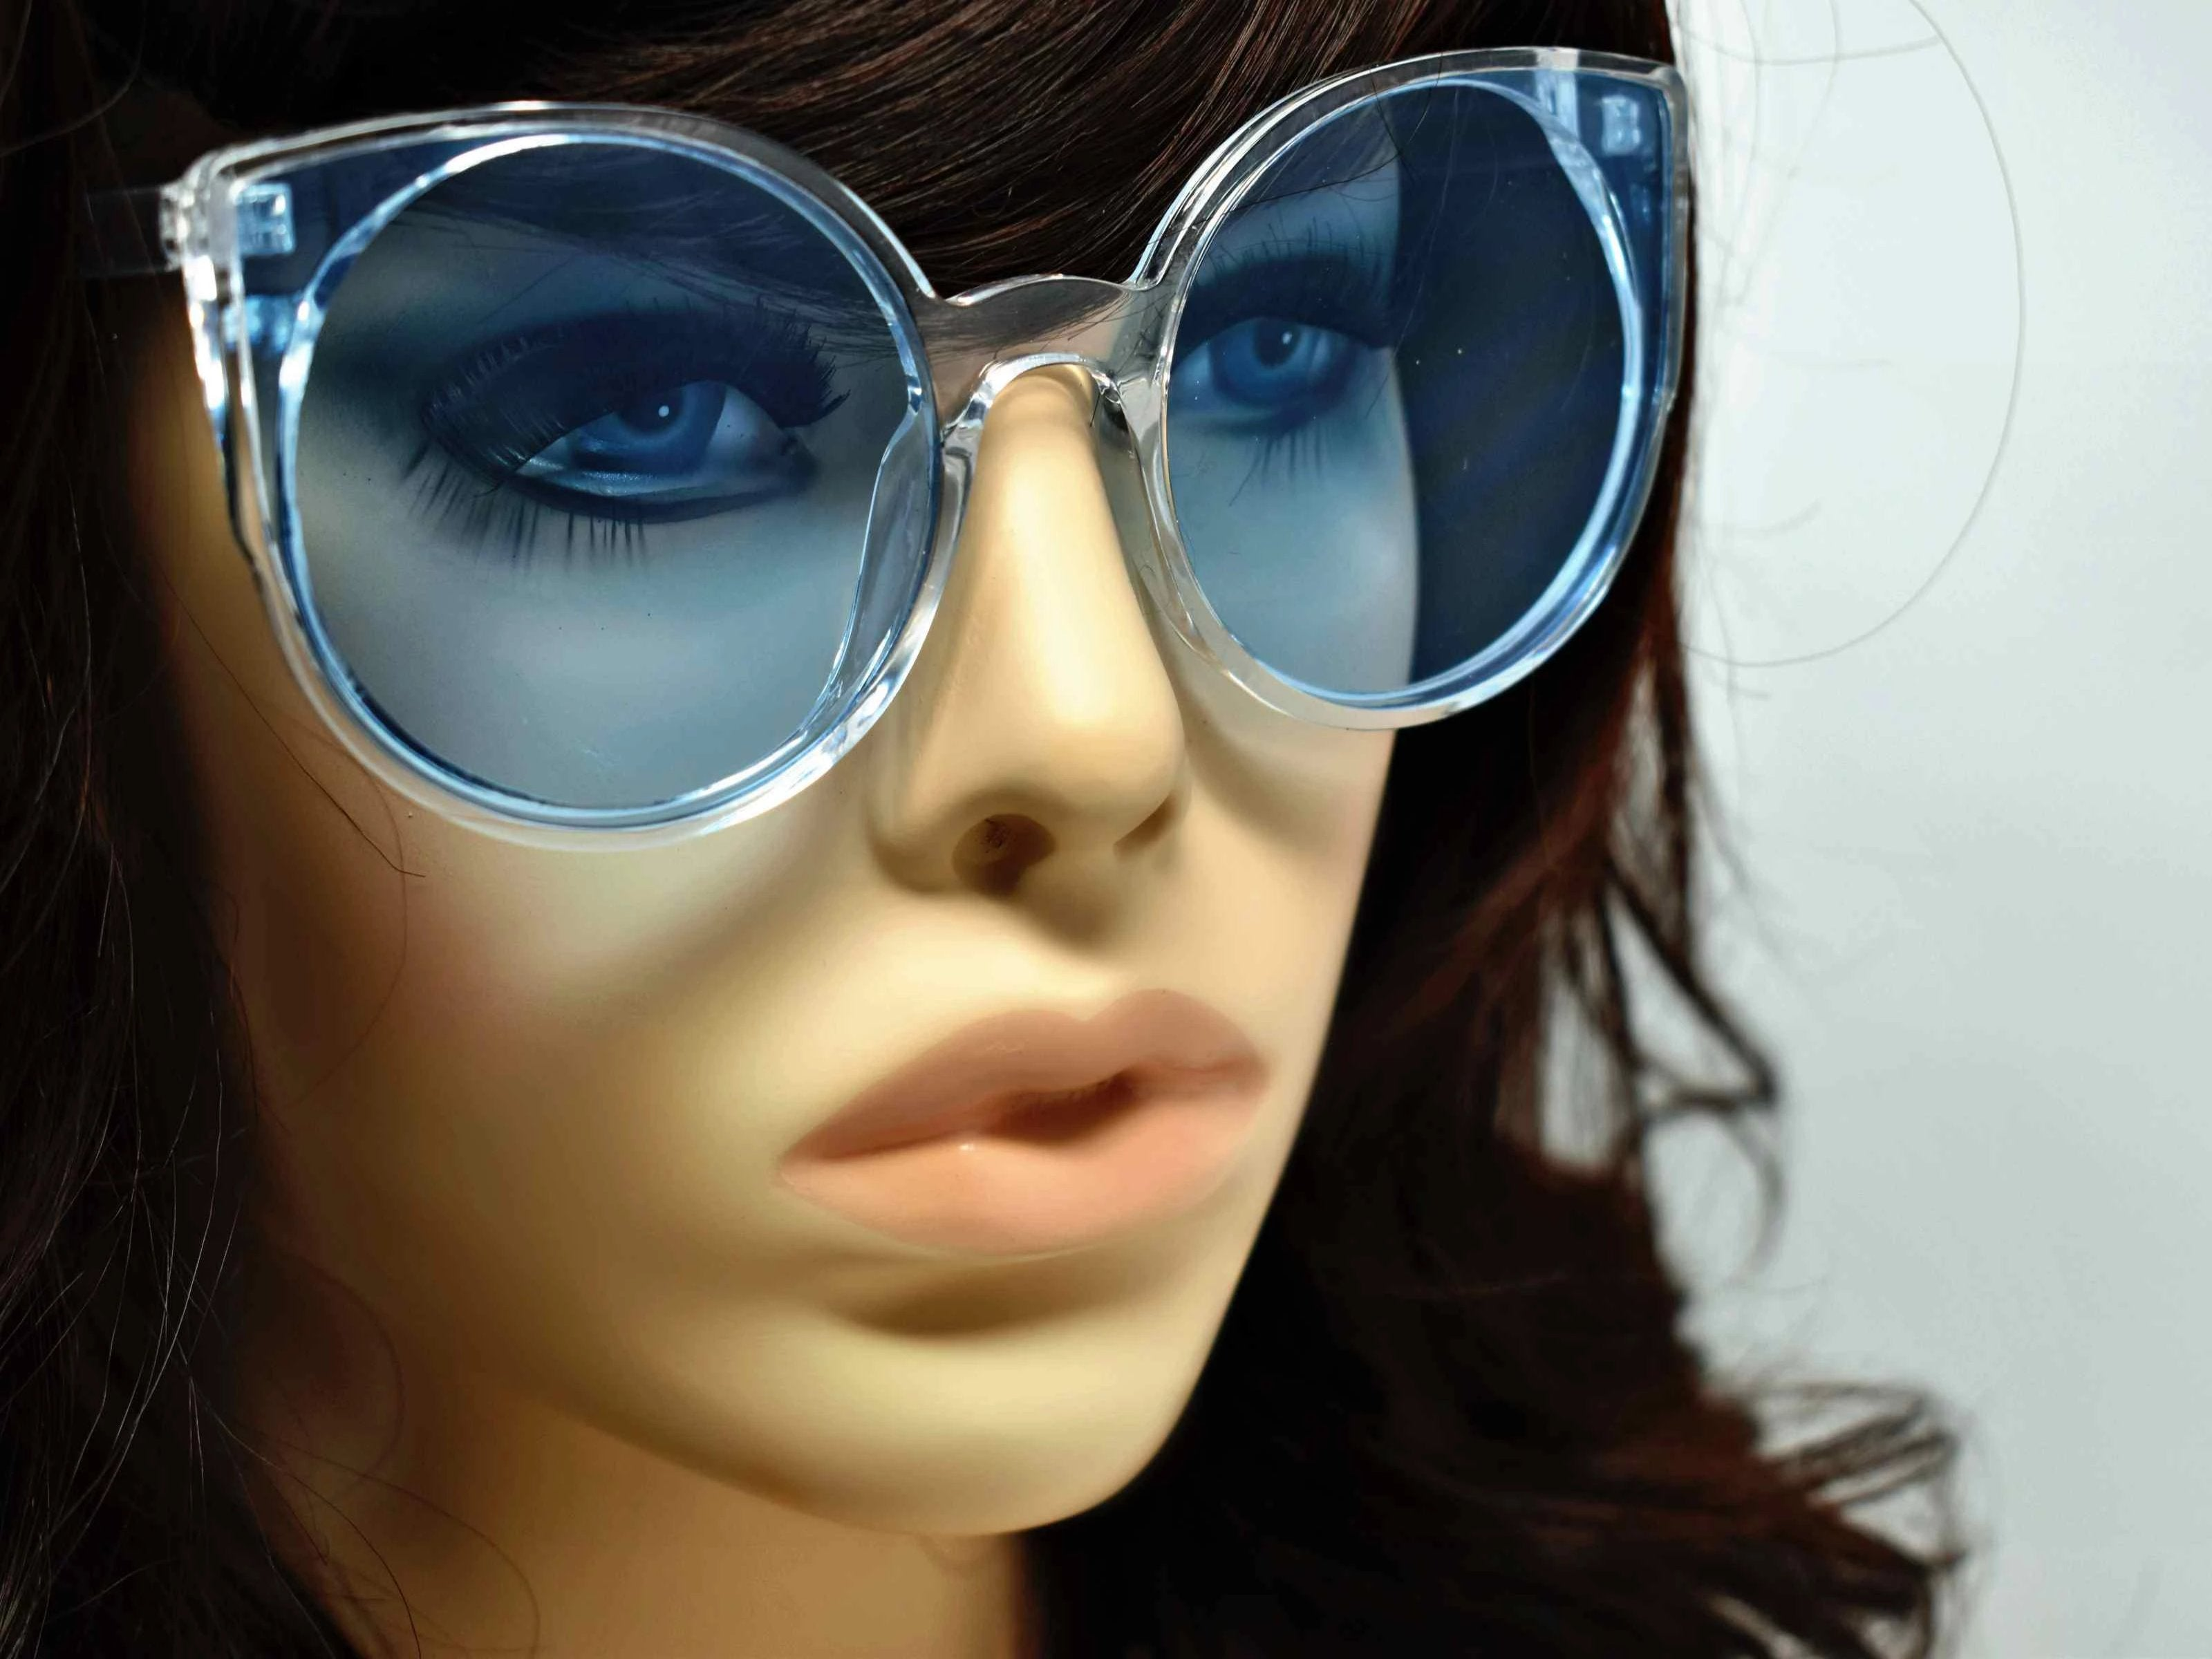 Say hello to our stylish Tansy clear framed sunglasses with blue lens and a cat eye shape.